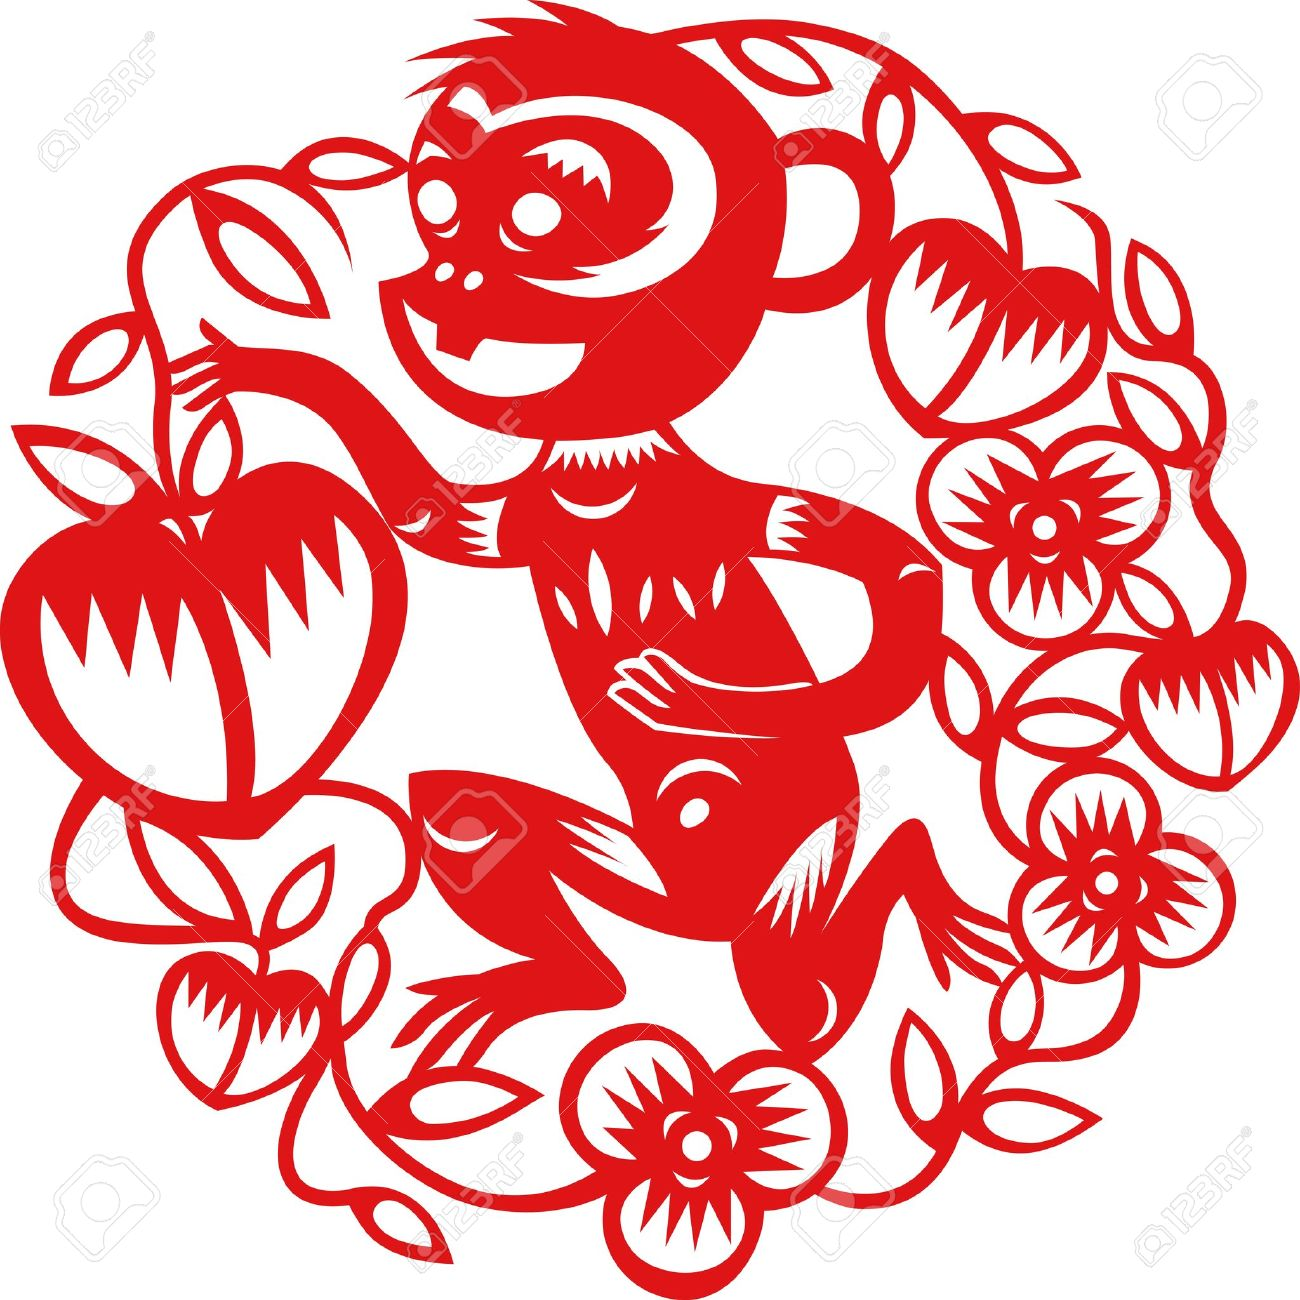 chinese year of monkey made by traditional chinese paper cut arts stock vector 15520295 - Chinese New Year Of The Monkey